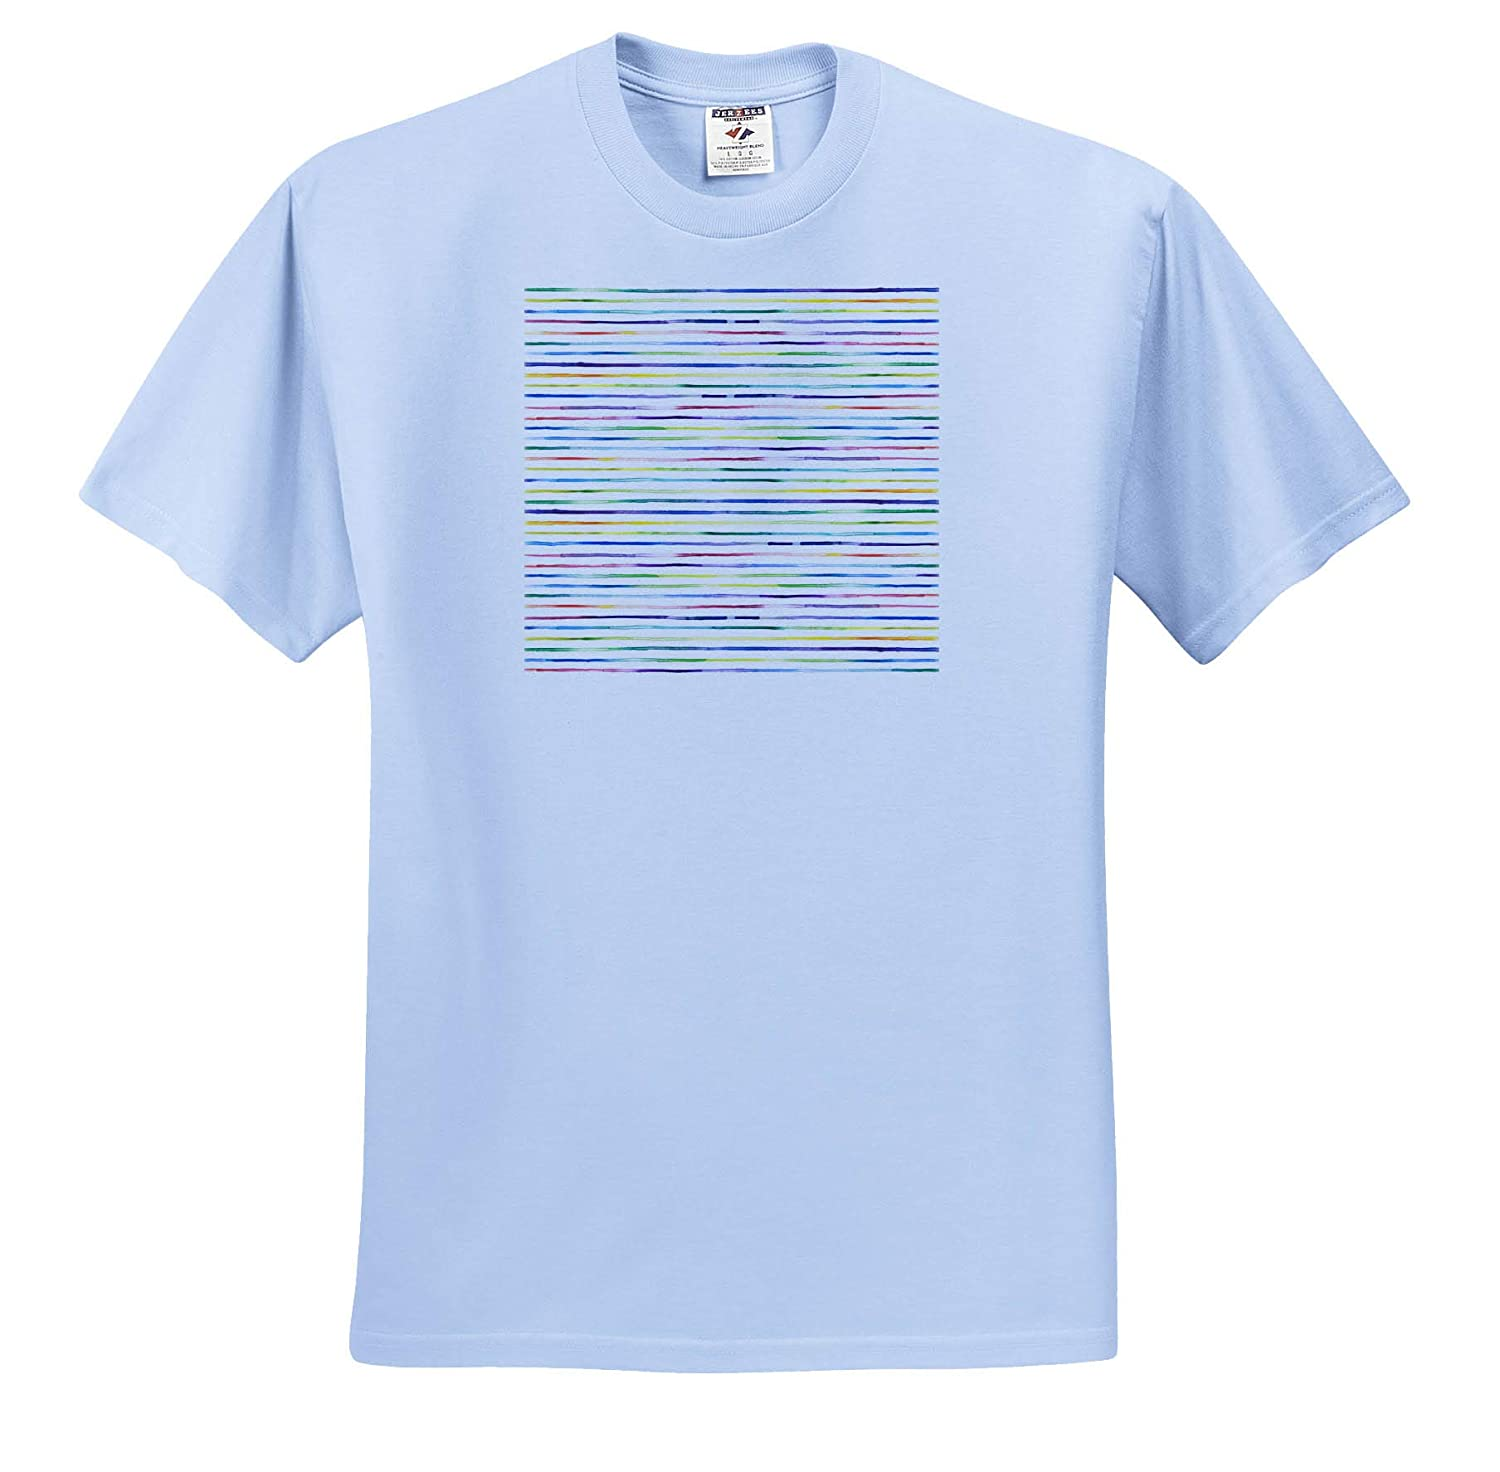 Adult T-Shirt XL Patterns 3dRose Anne Marie Baugh ts/_309418 Rainbow Image of Watercolor Thin Stripes Pattern